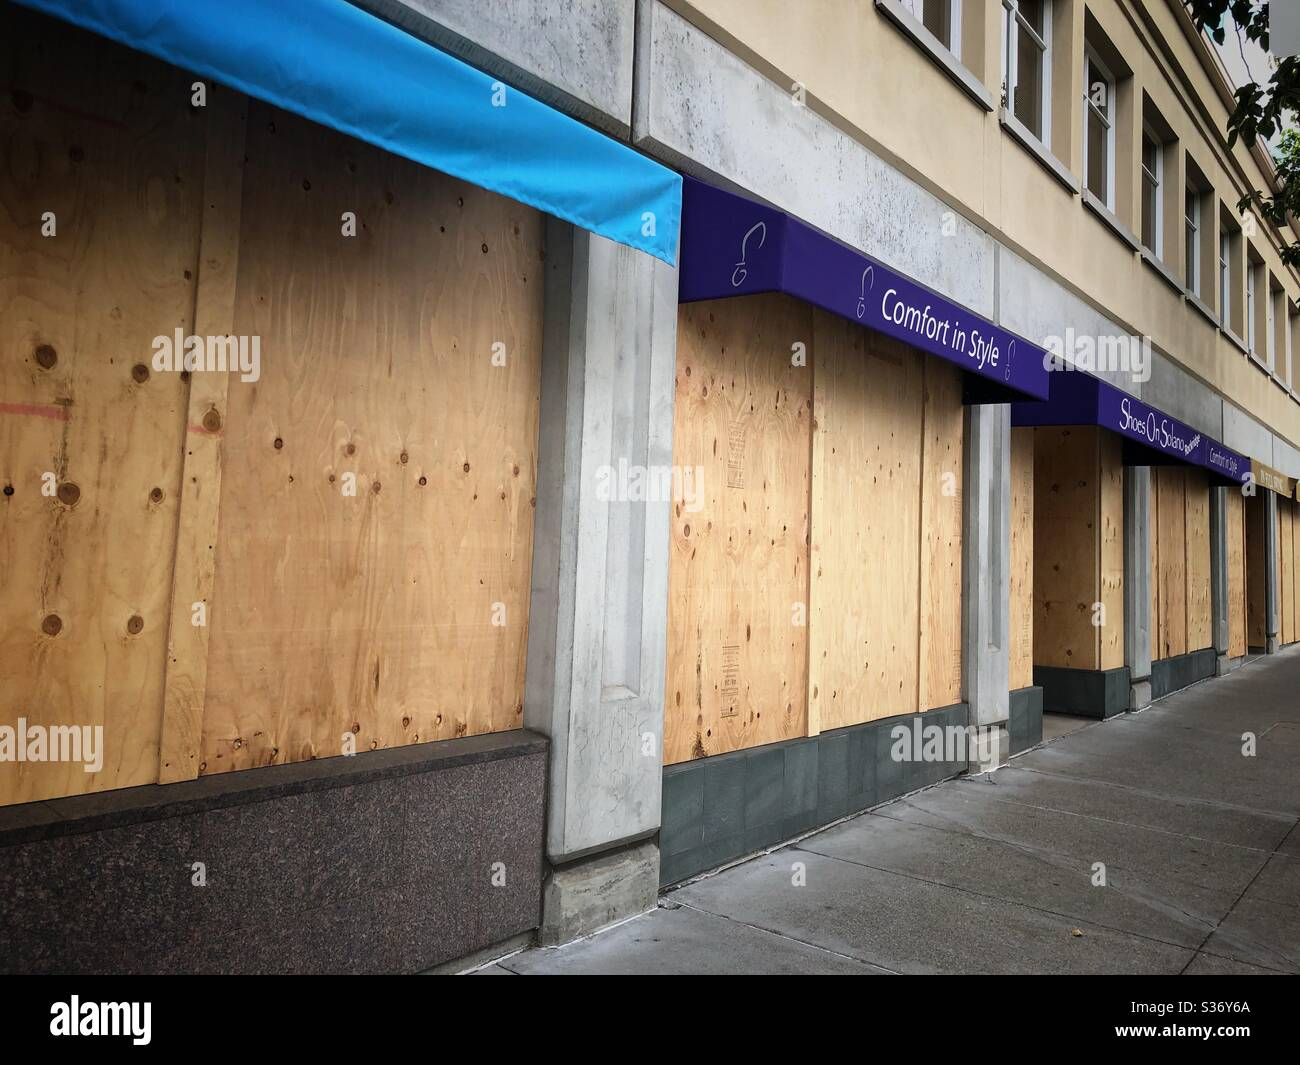 Boarded up storefronts on College Avenue in Oakland, California. Stock Photo